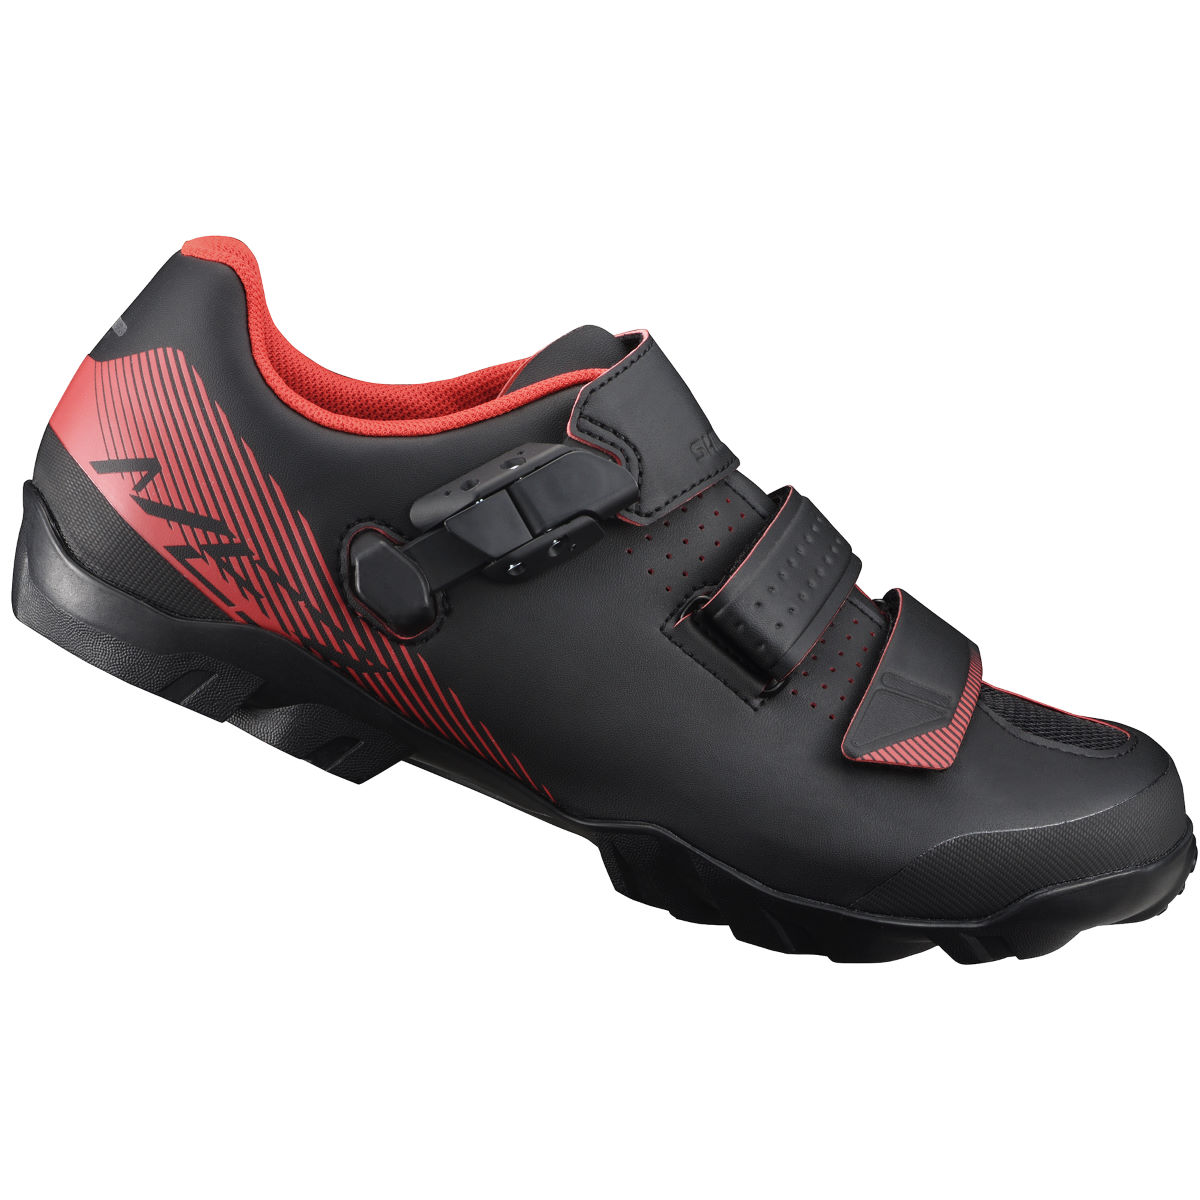 Chaussures VTT Shimano ME3 SPD (coupe large) - 52 Noir/Orange